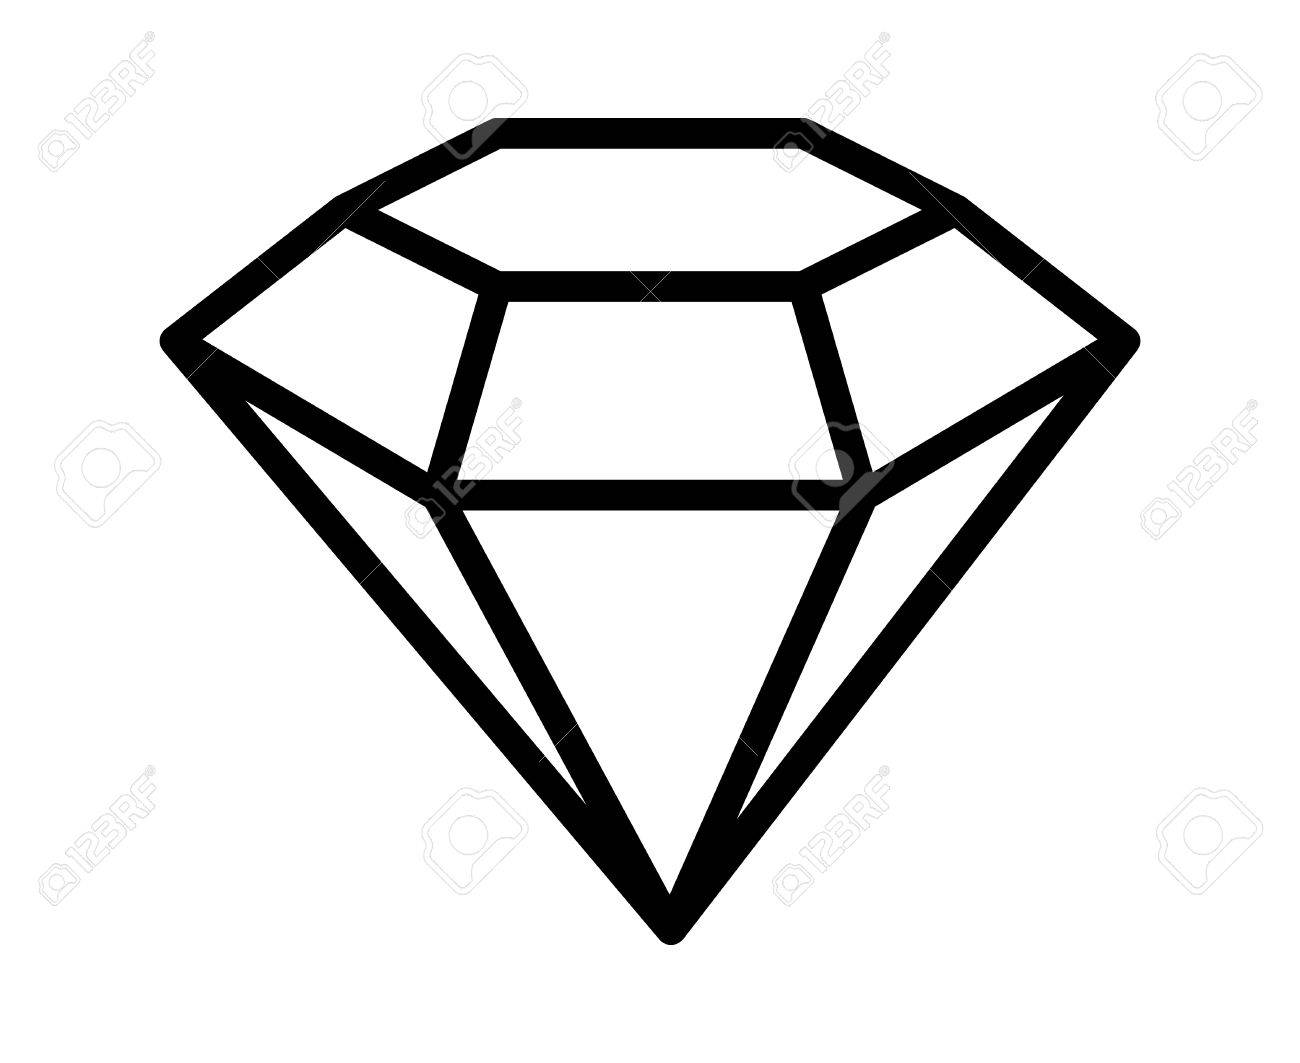 Diamond gemstone, jewel or gem line art icon for apps and websites.